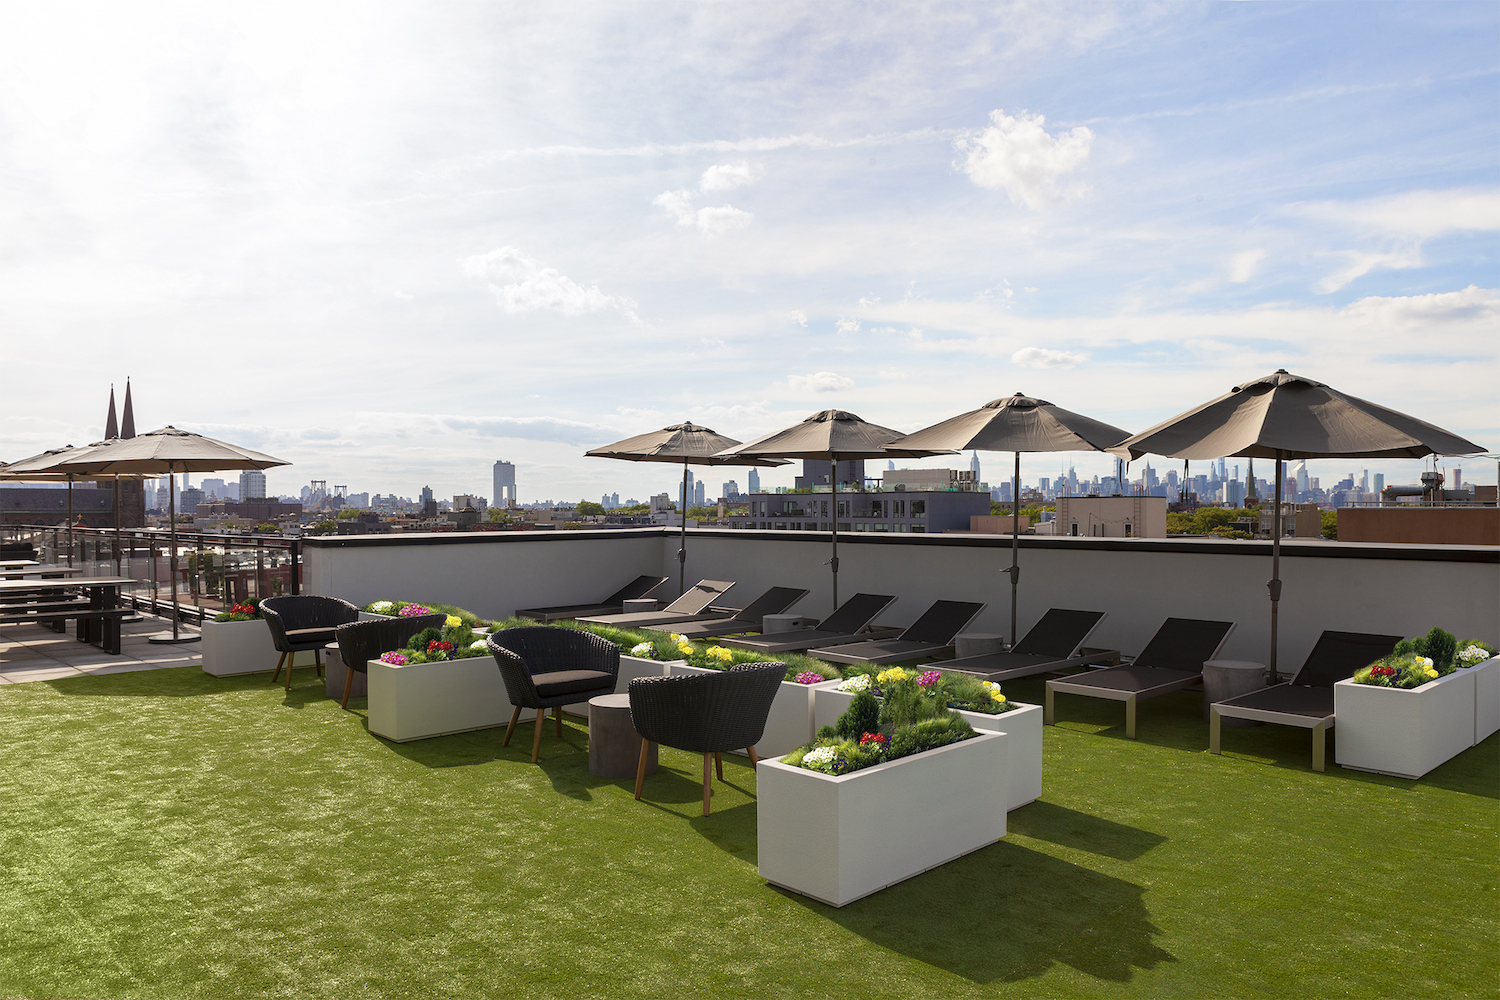 Rooftop amenities at 222 Johnson Avenue in East Williamsburg, Brooklyn